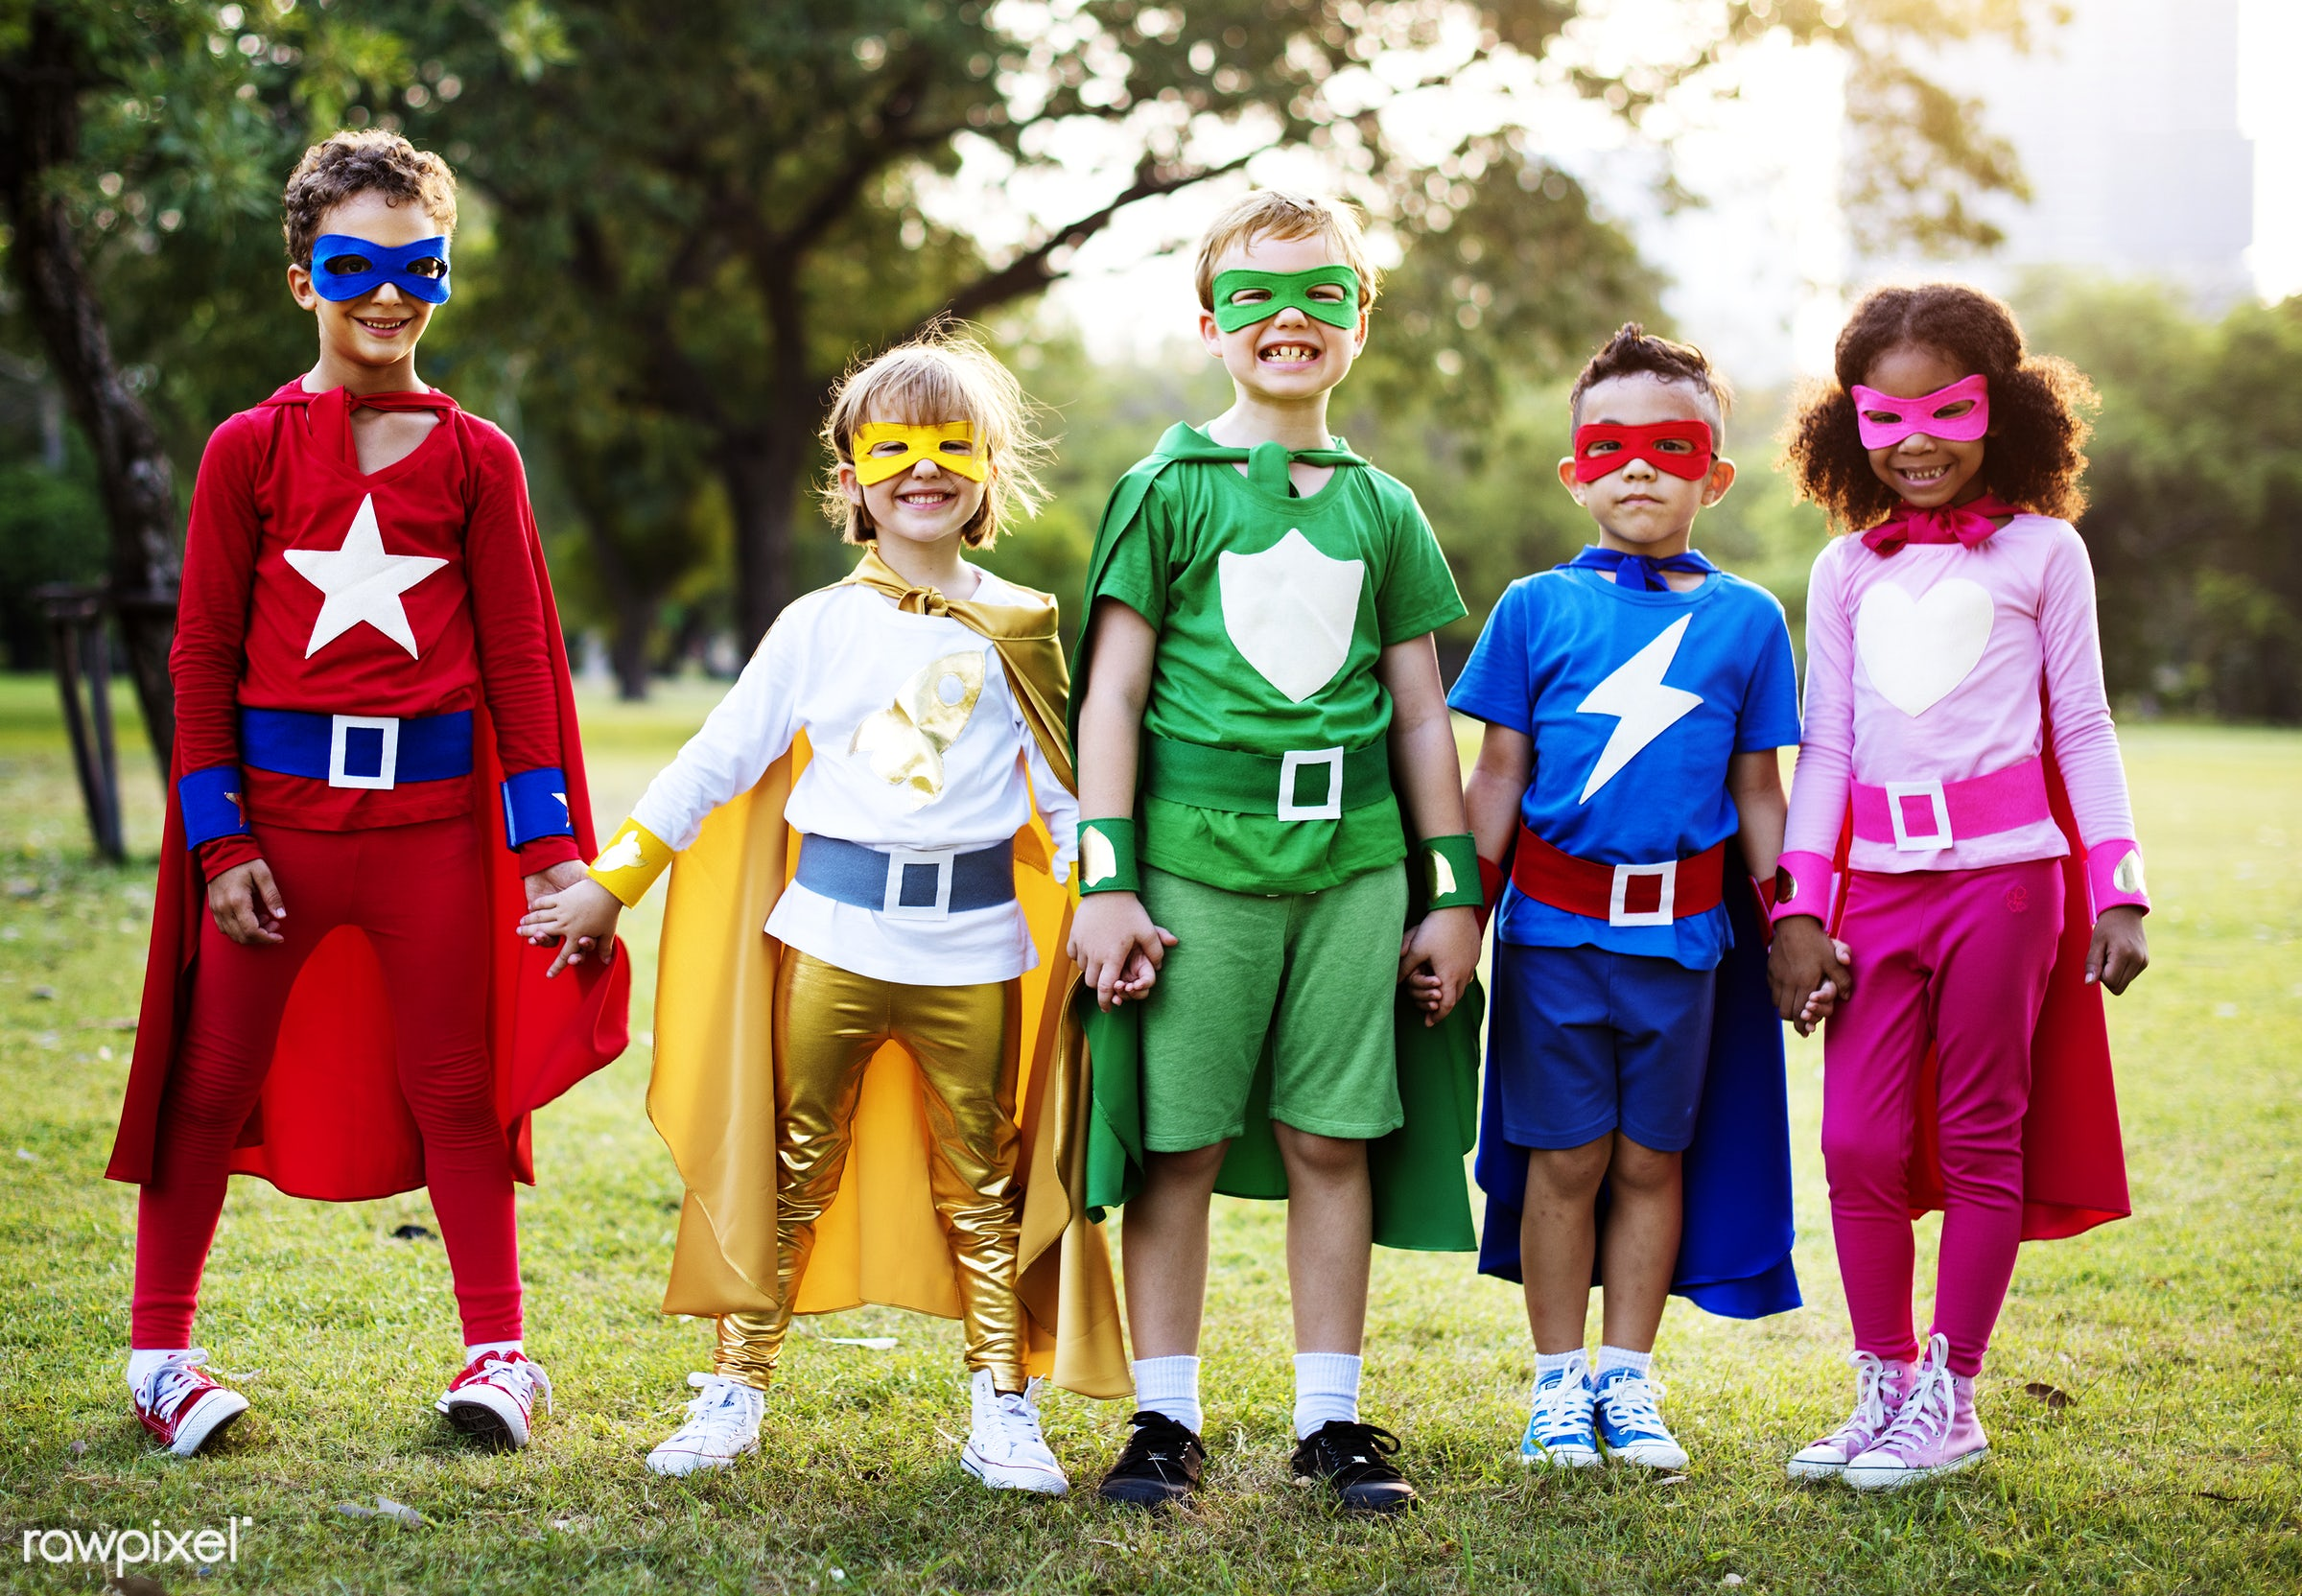 Superhero kids with superpowers - active, activities, adorable, african american, boys, caucasian, cheerful, child,...